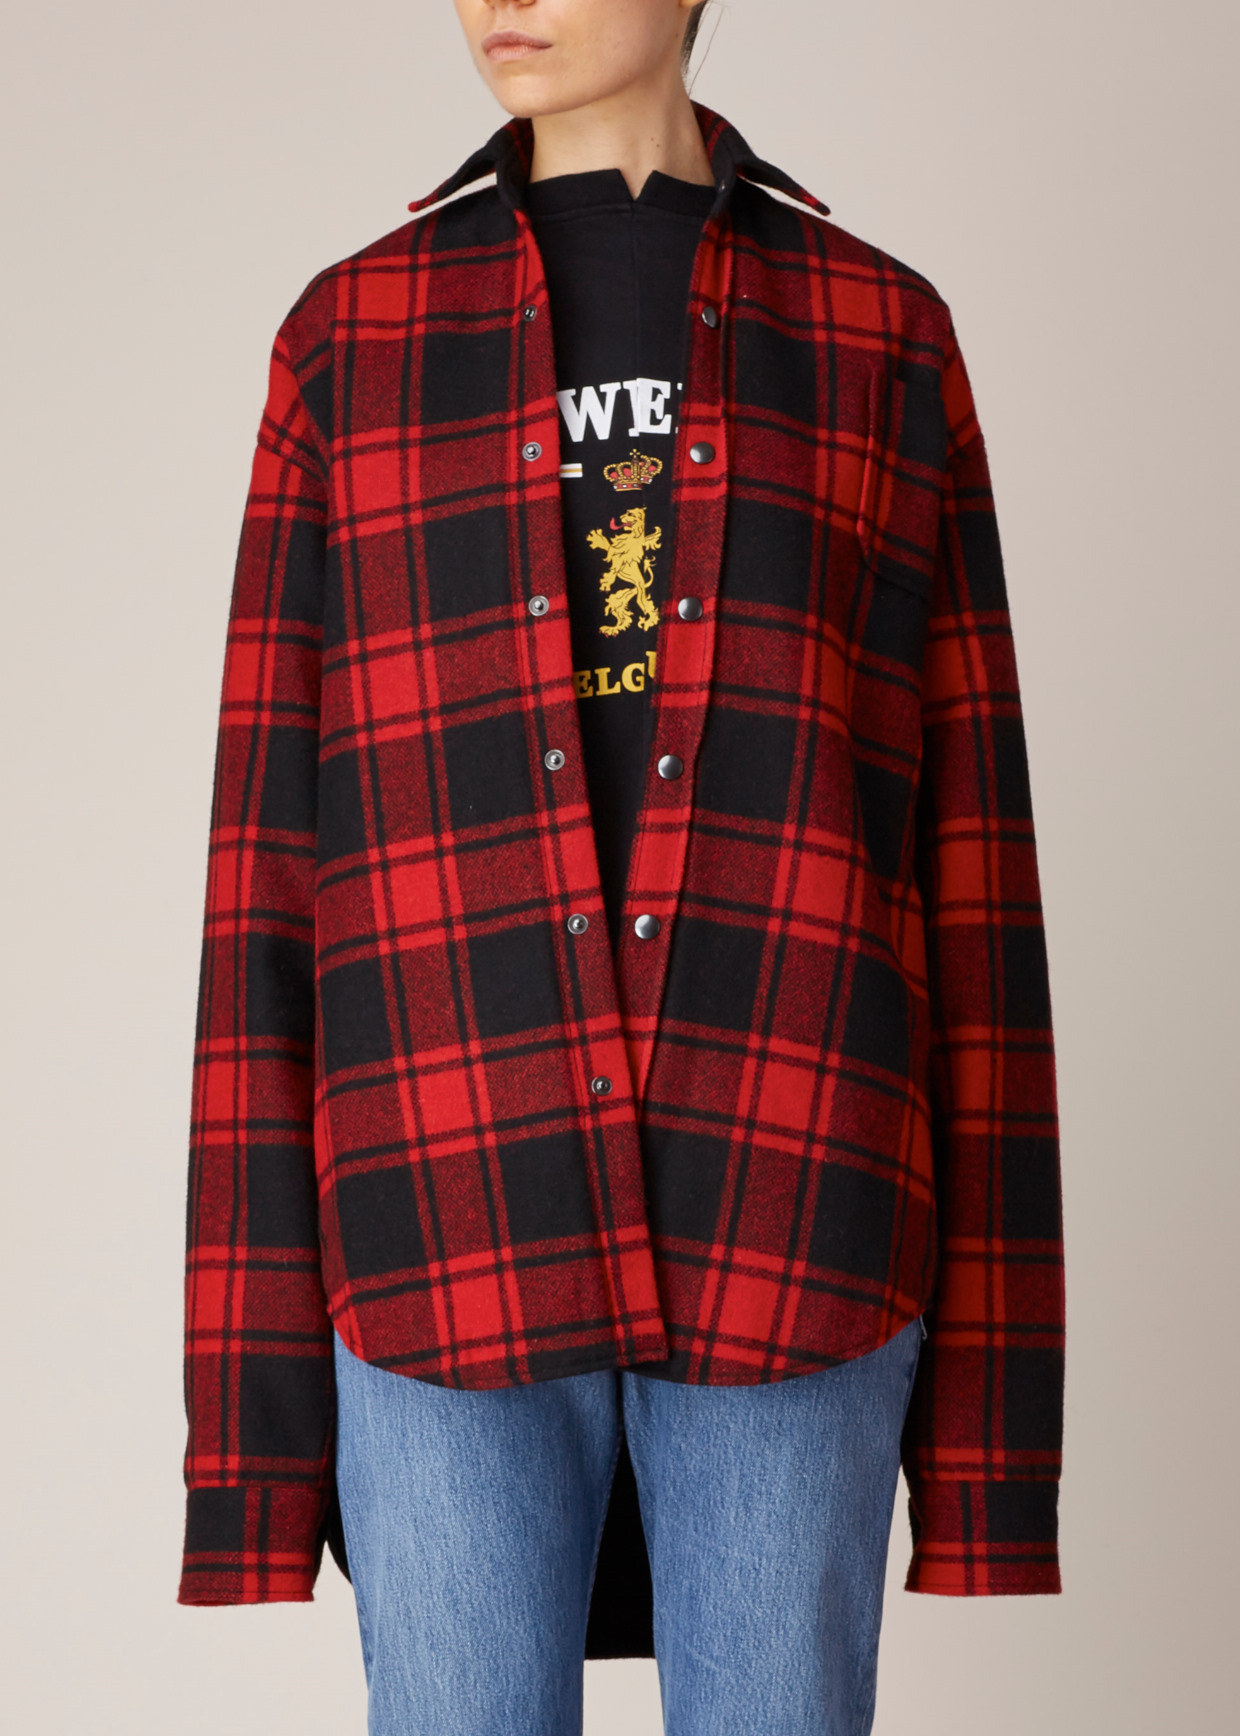 Lyst vetements black red plaid shirt in red for Dark red plaid shirt